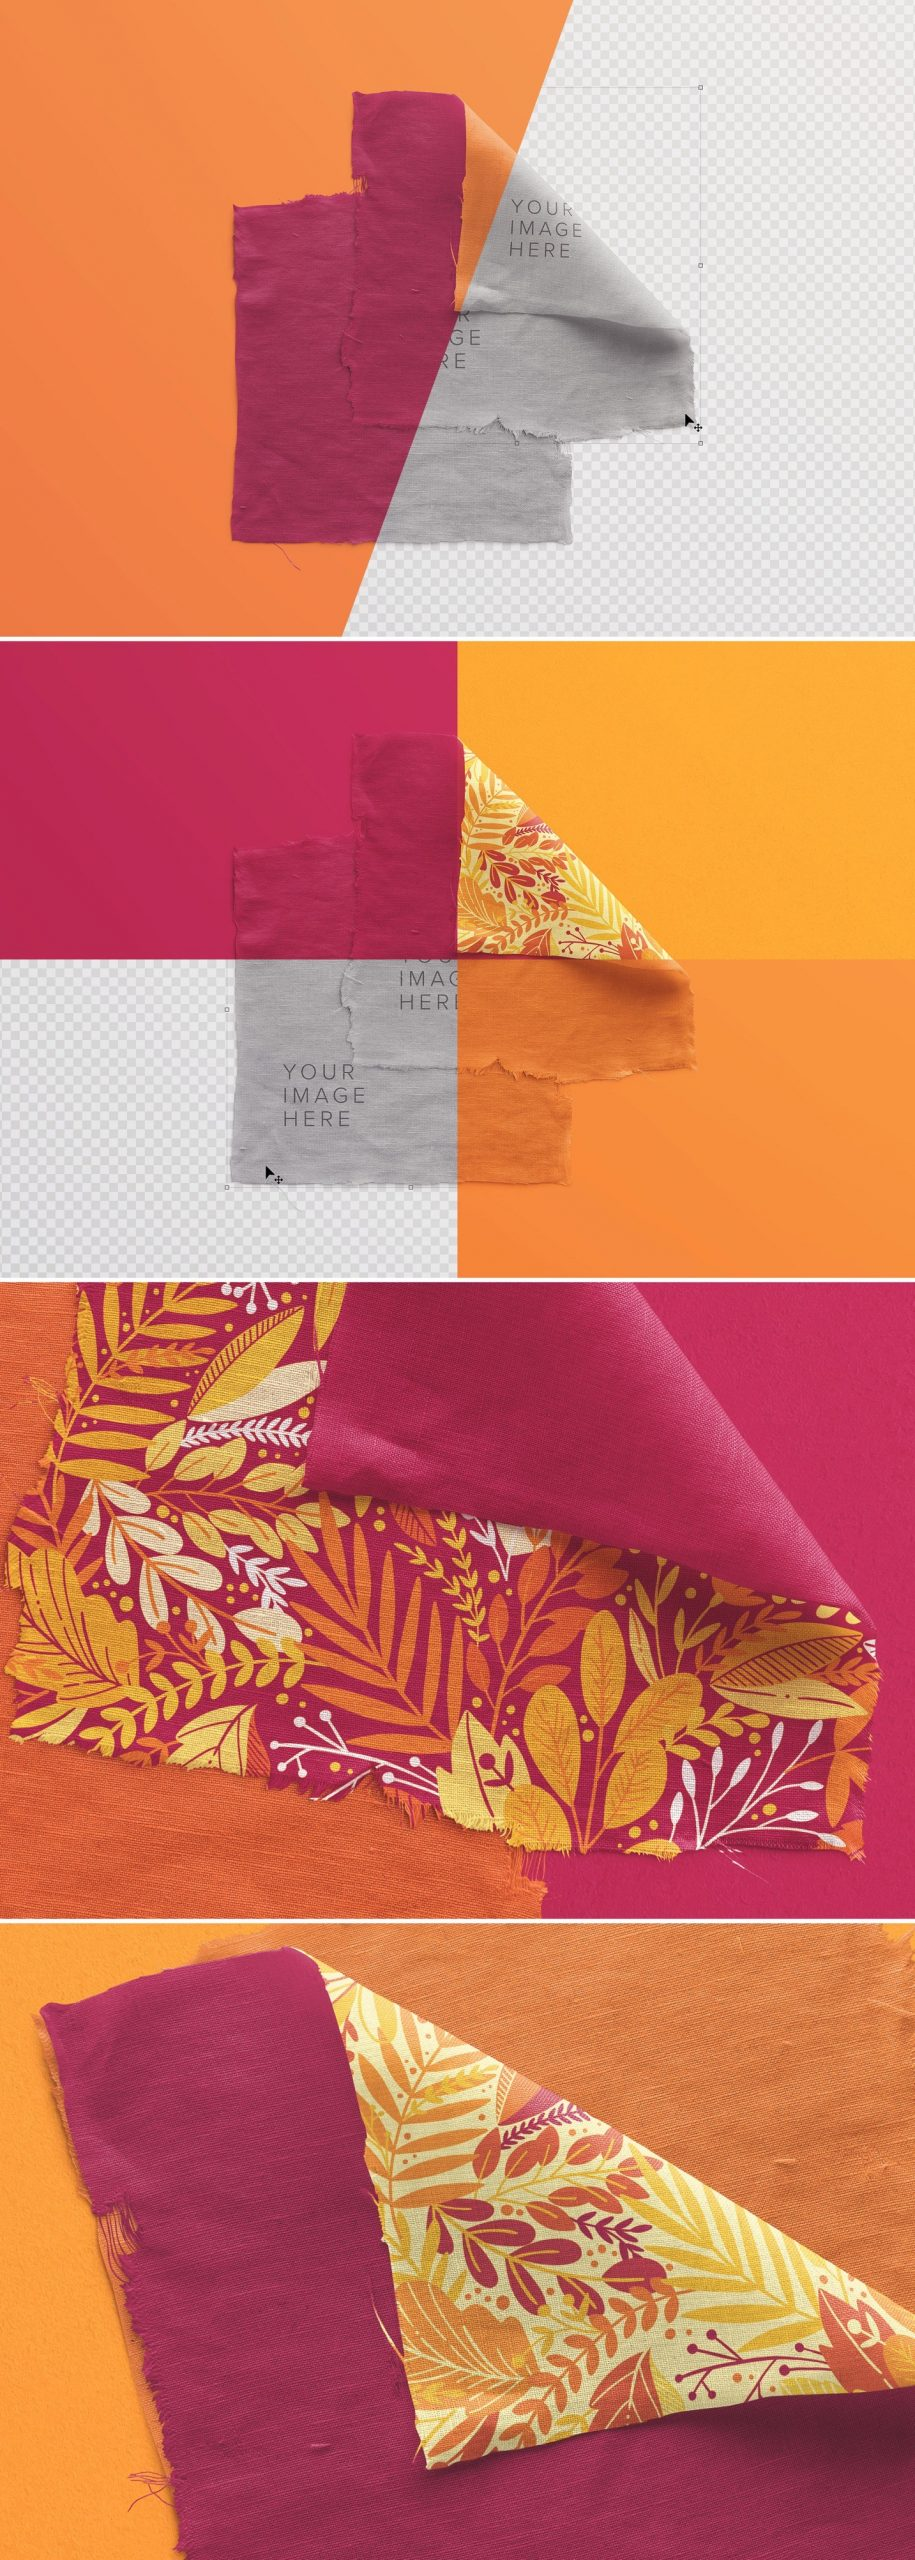 fabric linen mockup preview1 1 scaled